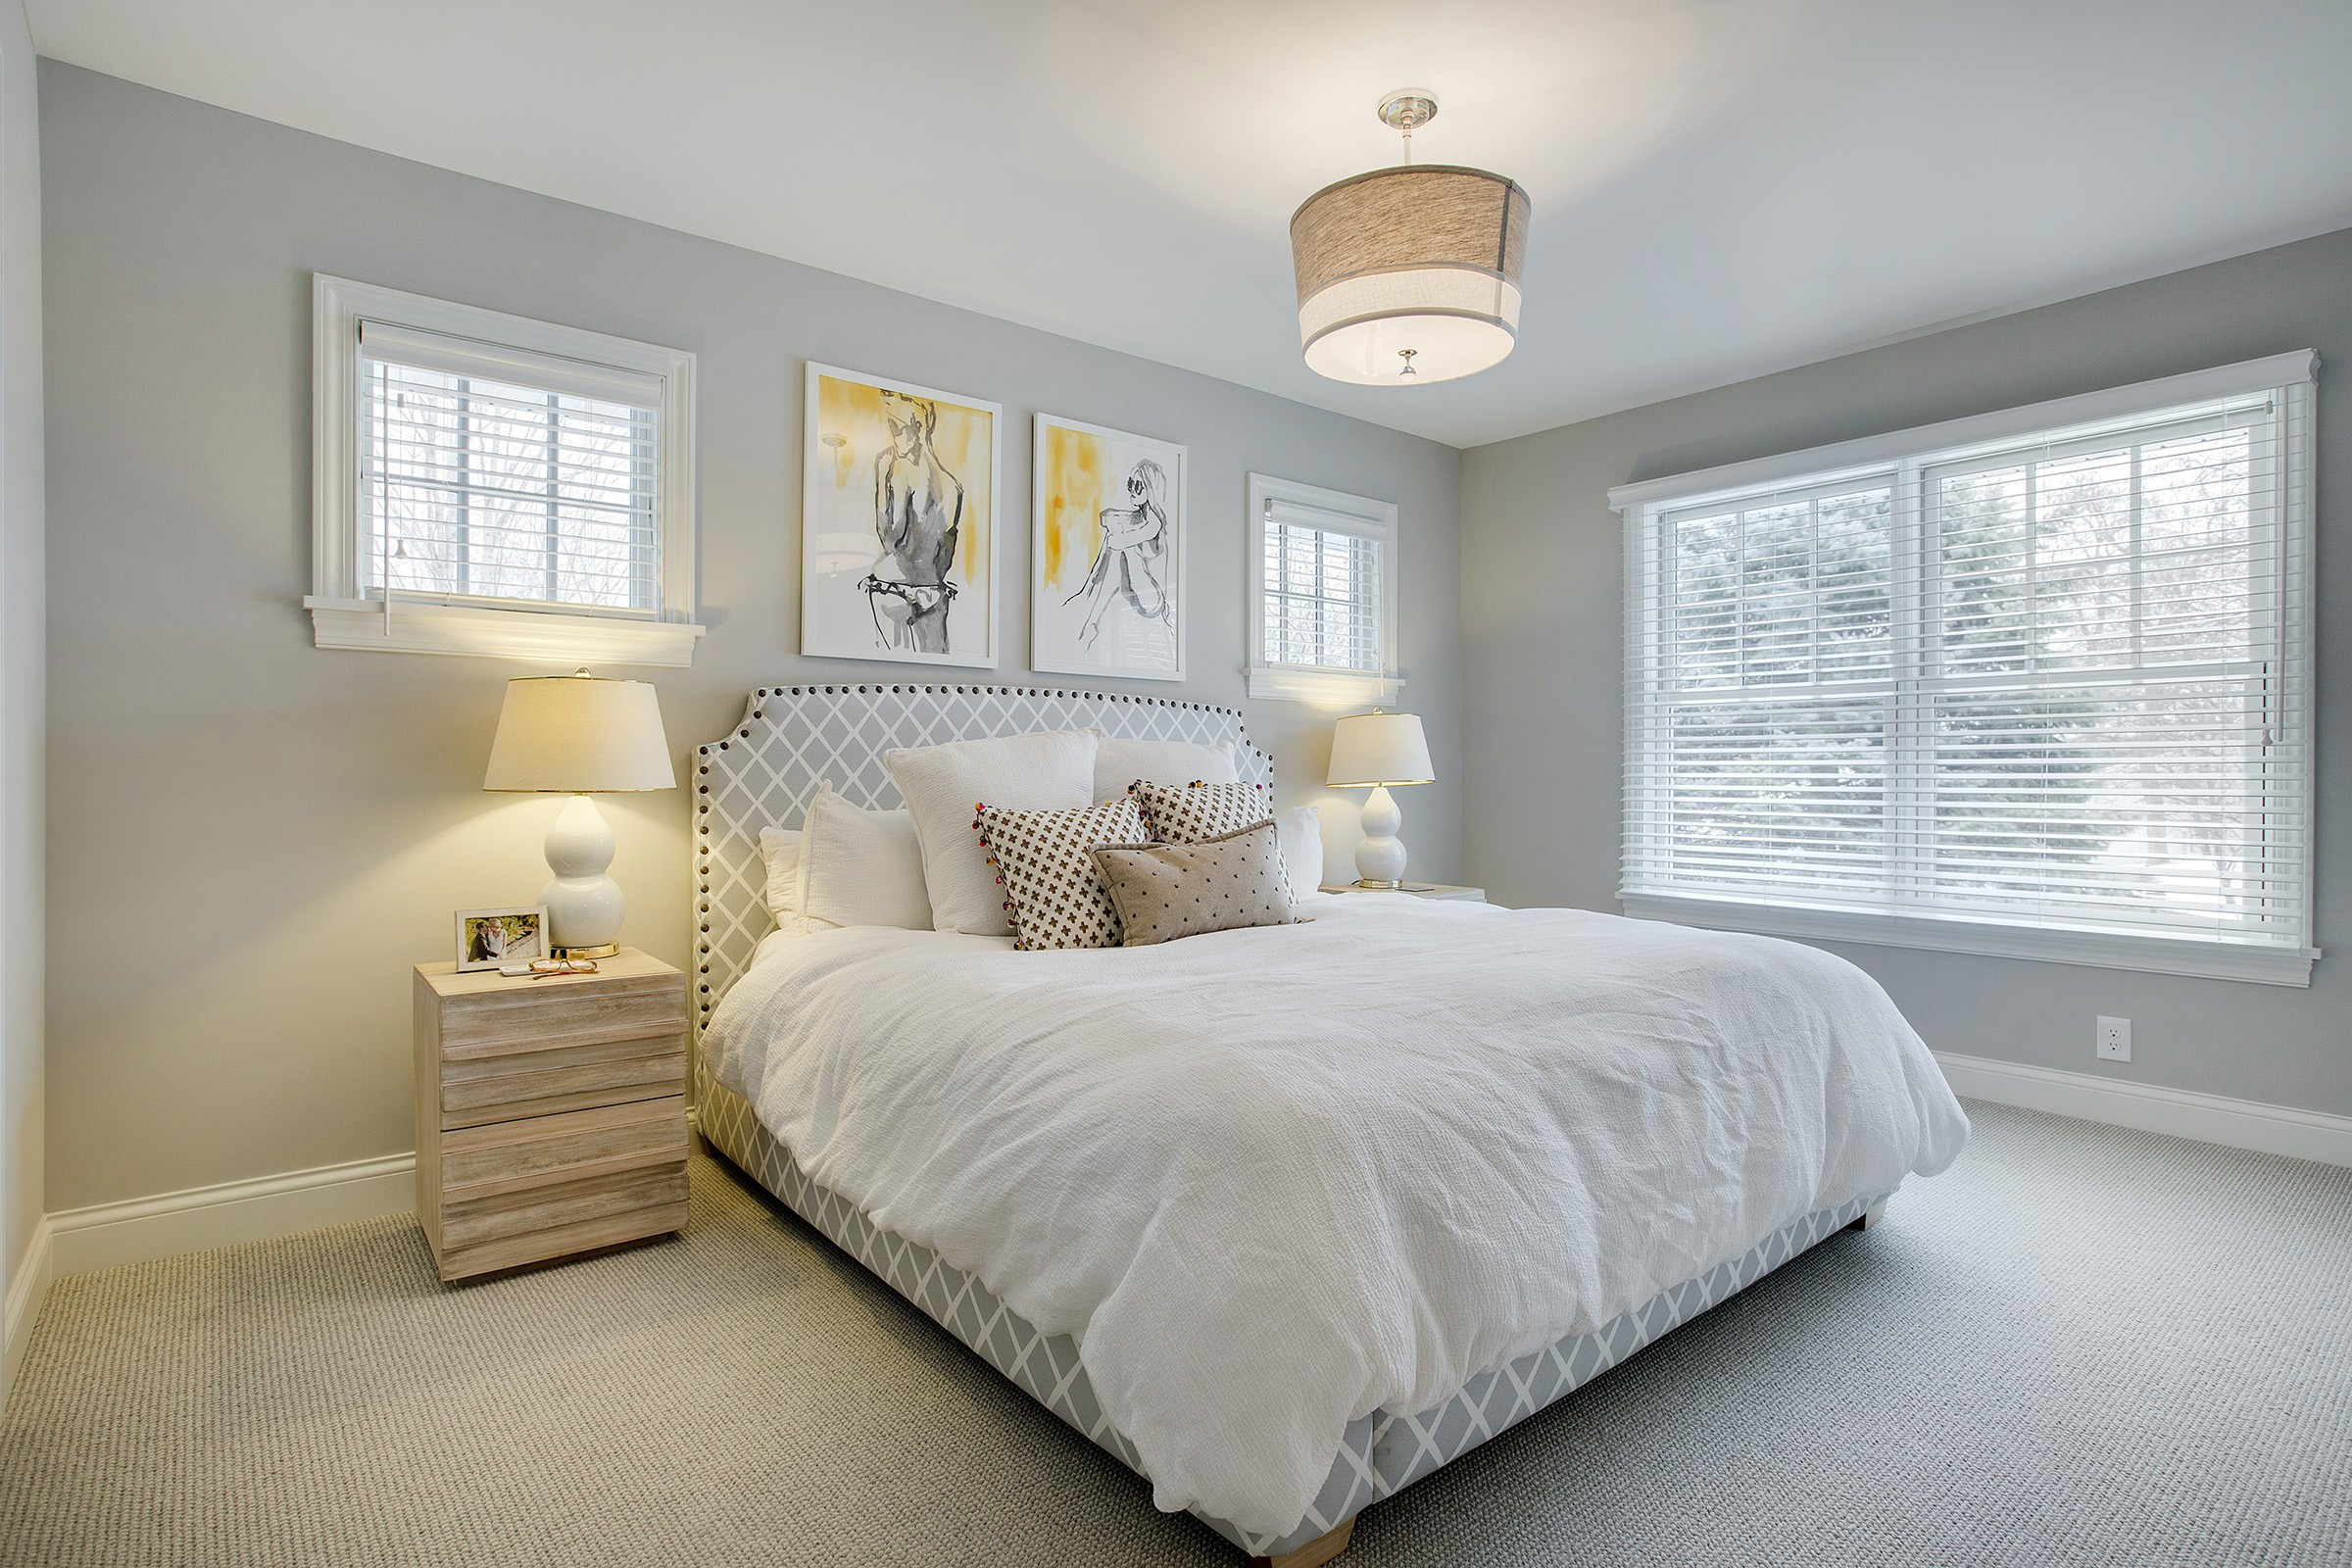 Master Bedroom Remodel- Revision LLC